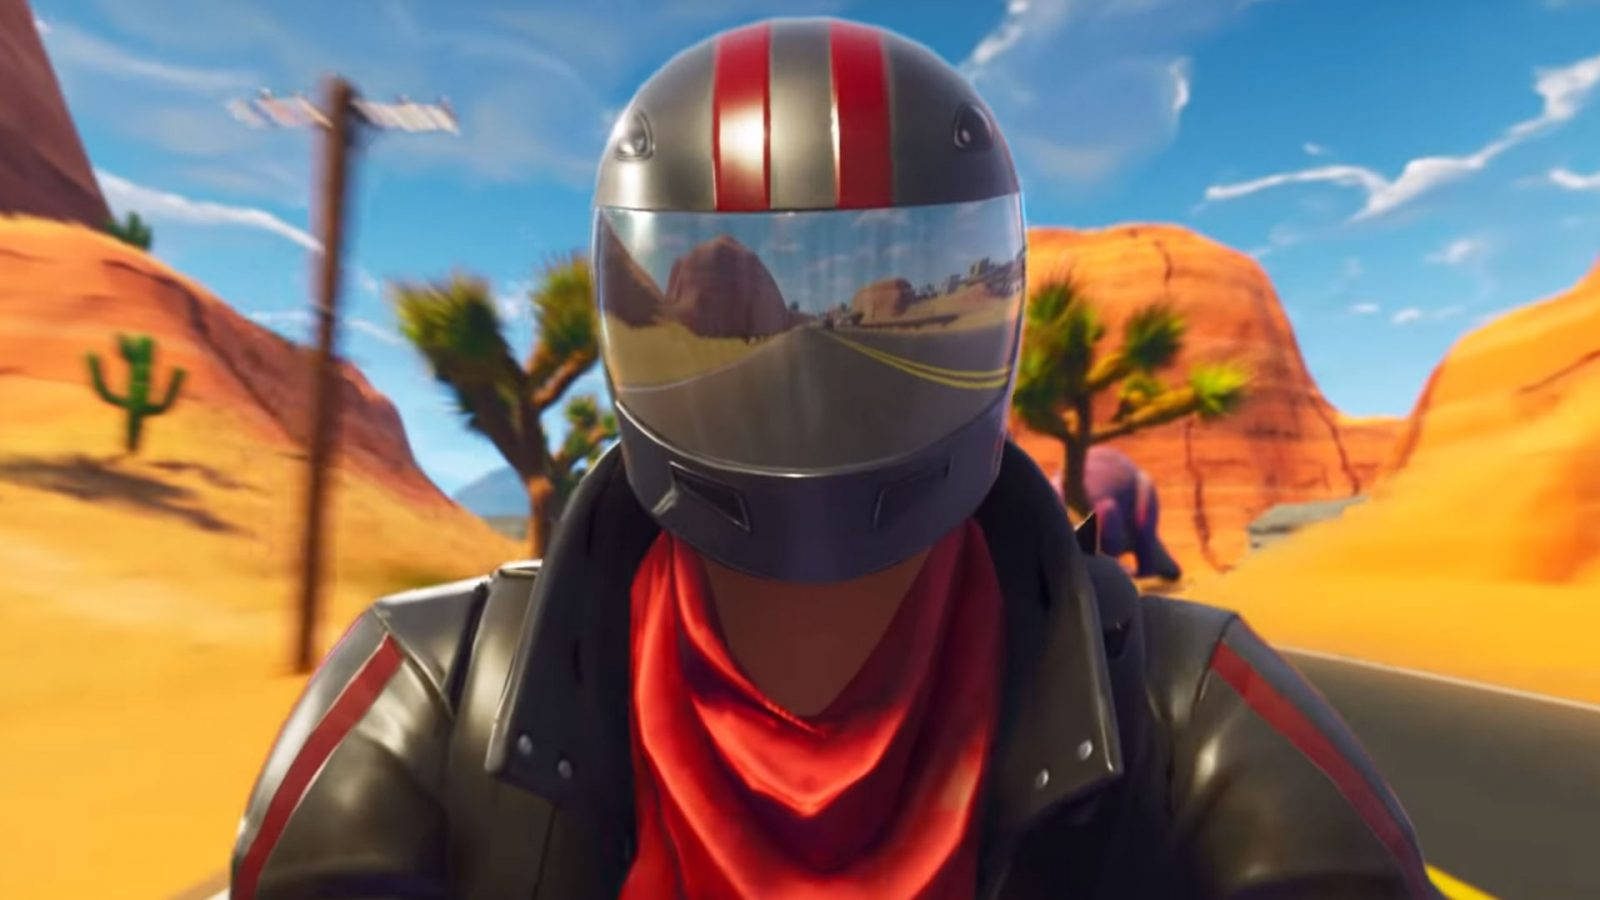 fortnite-steam:-how-to-get-the-battle-royale-game-on-valve's-client